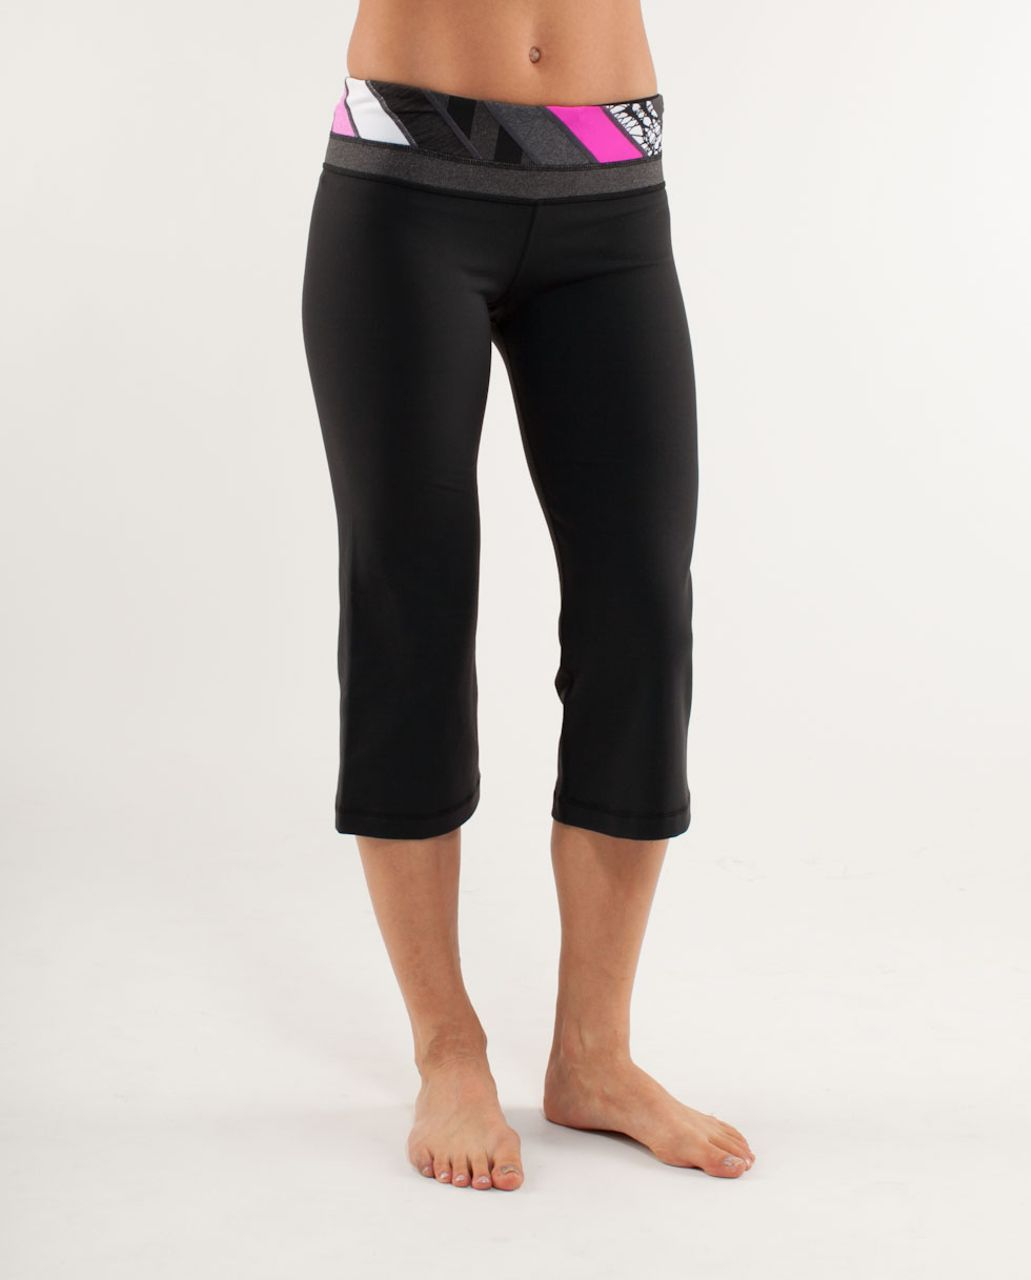 Lululemon Groove Crop - Black /  Quilting Winter 7 /  Quilting Winter 7